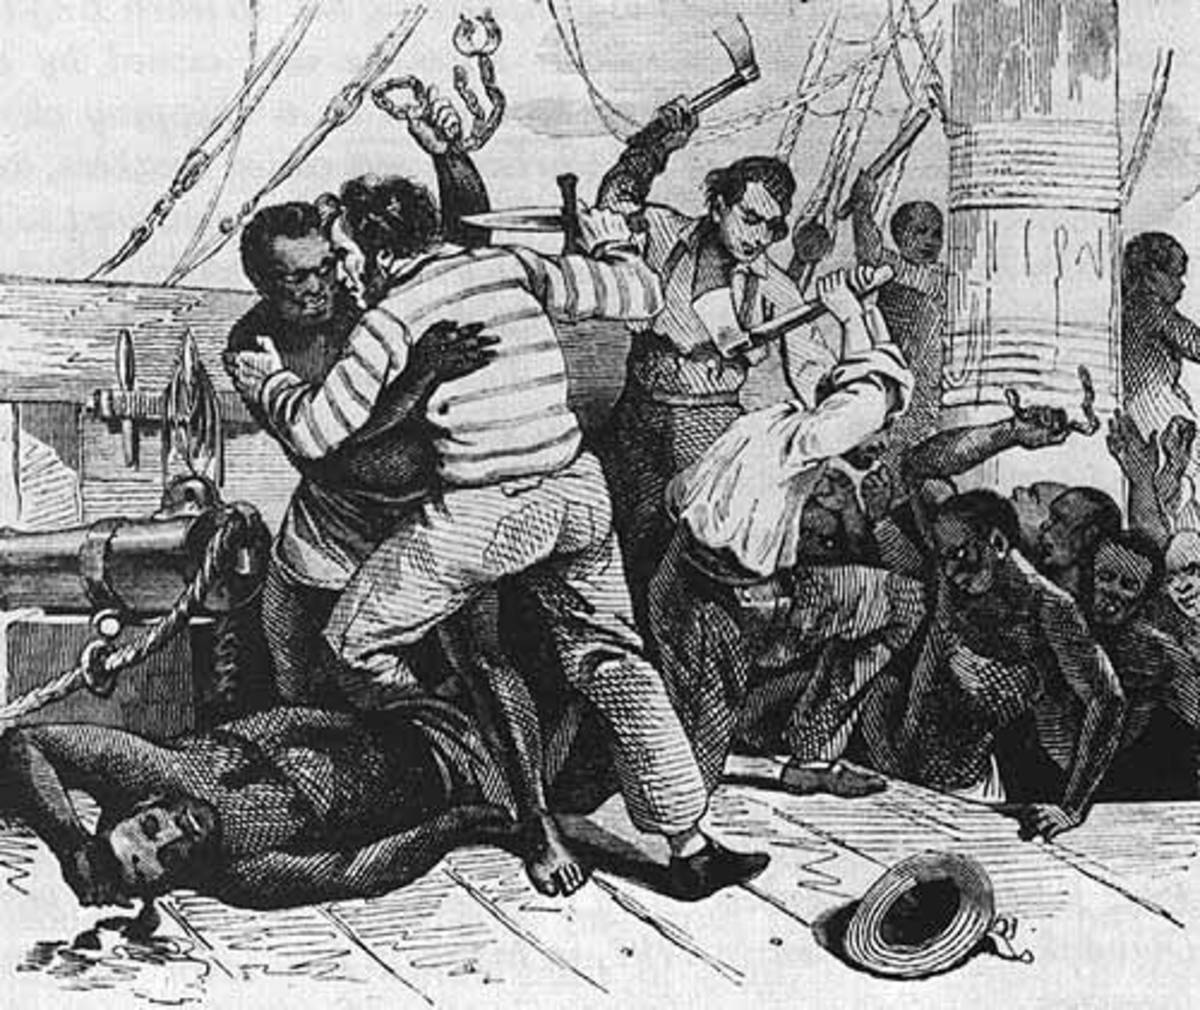 Slaves were not passive objects but instead actively resisted, their mutiny being a deadly threat to the slavers.